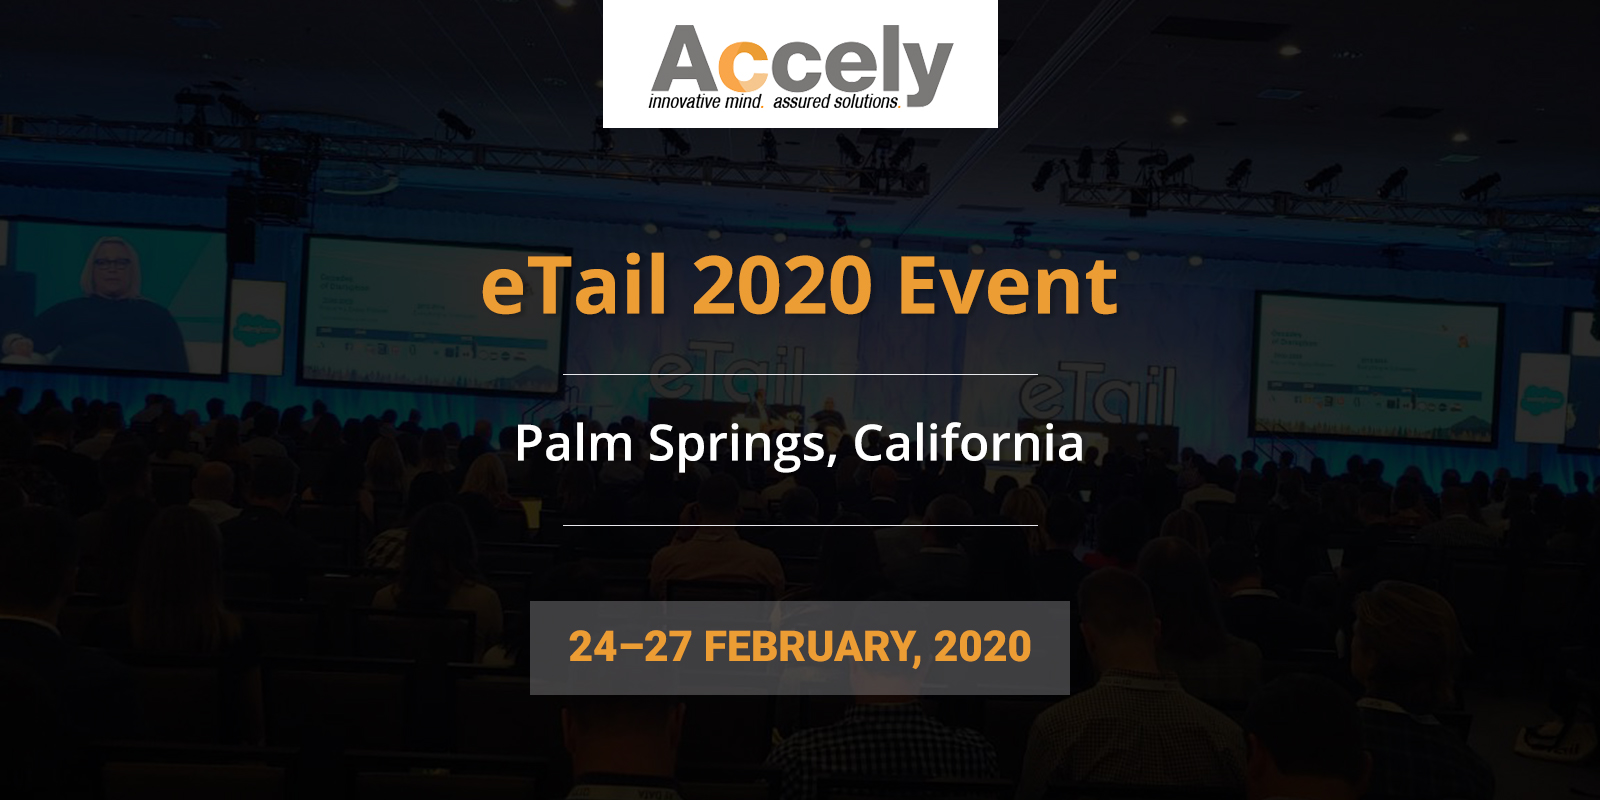 eTail 2020 Event to Discuss the Future of Retail